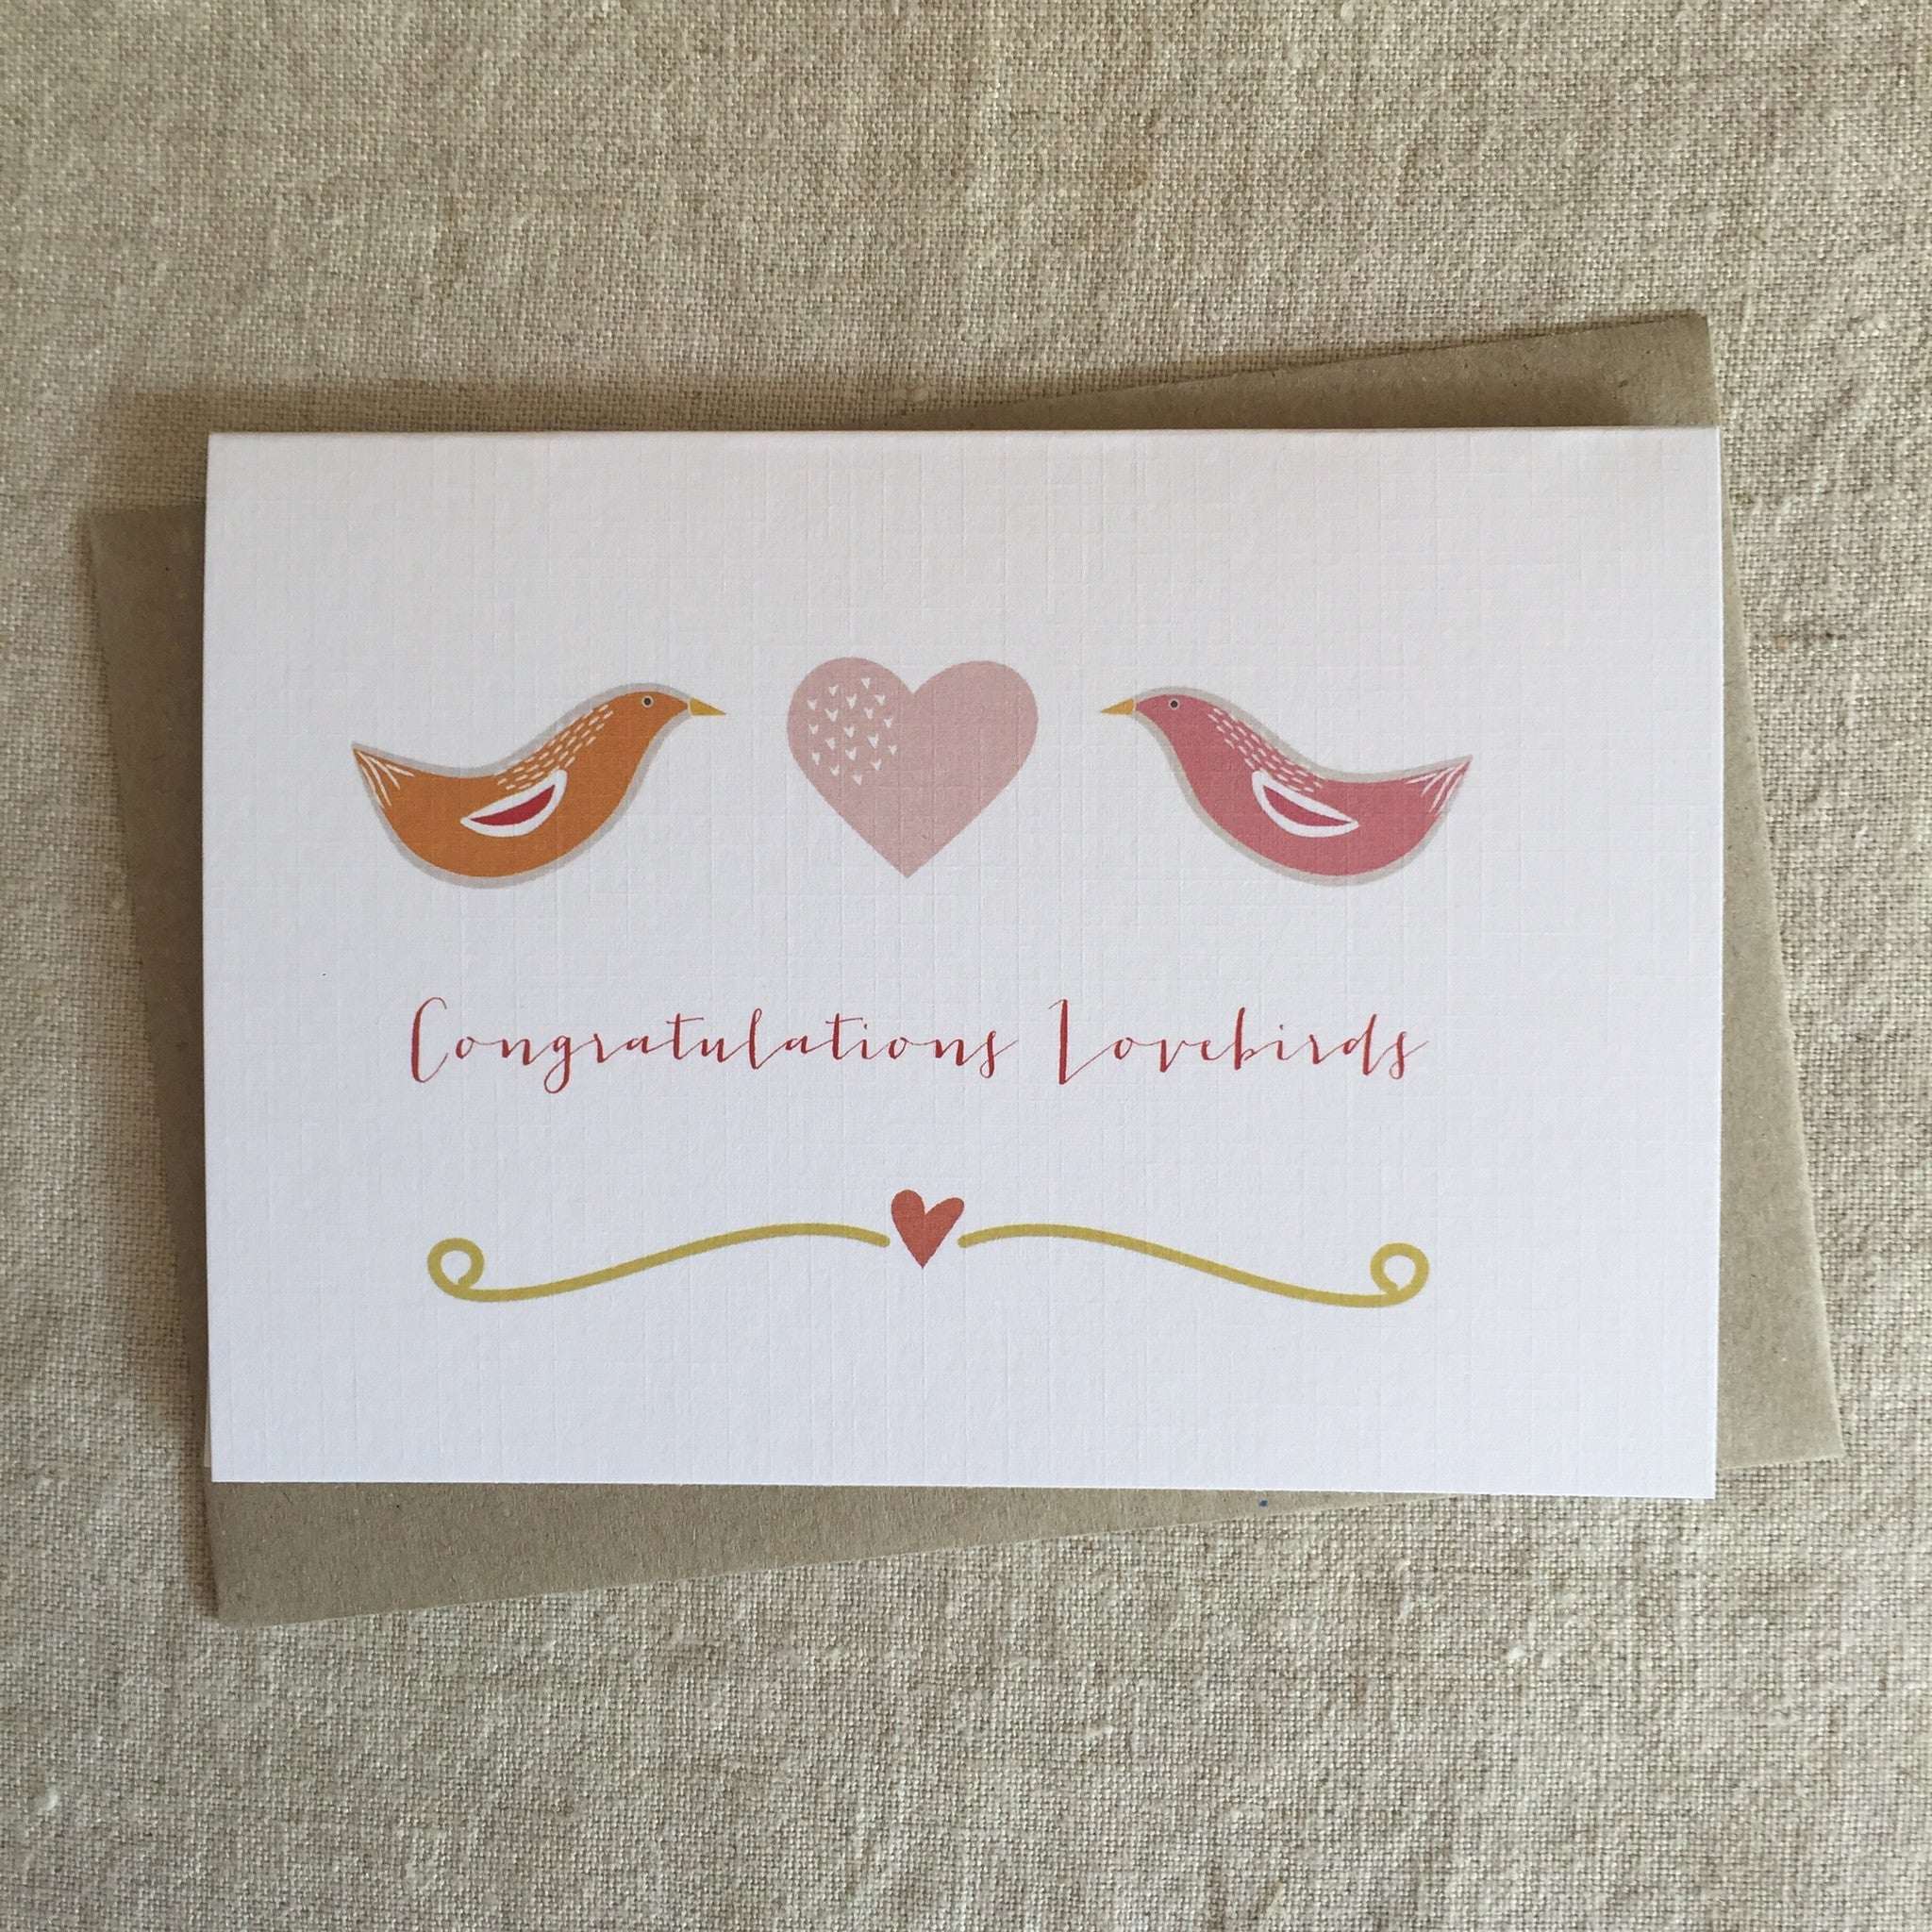 Congratulations Lovebirds Card